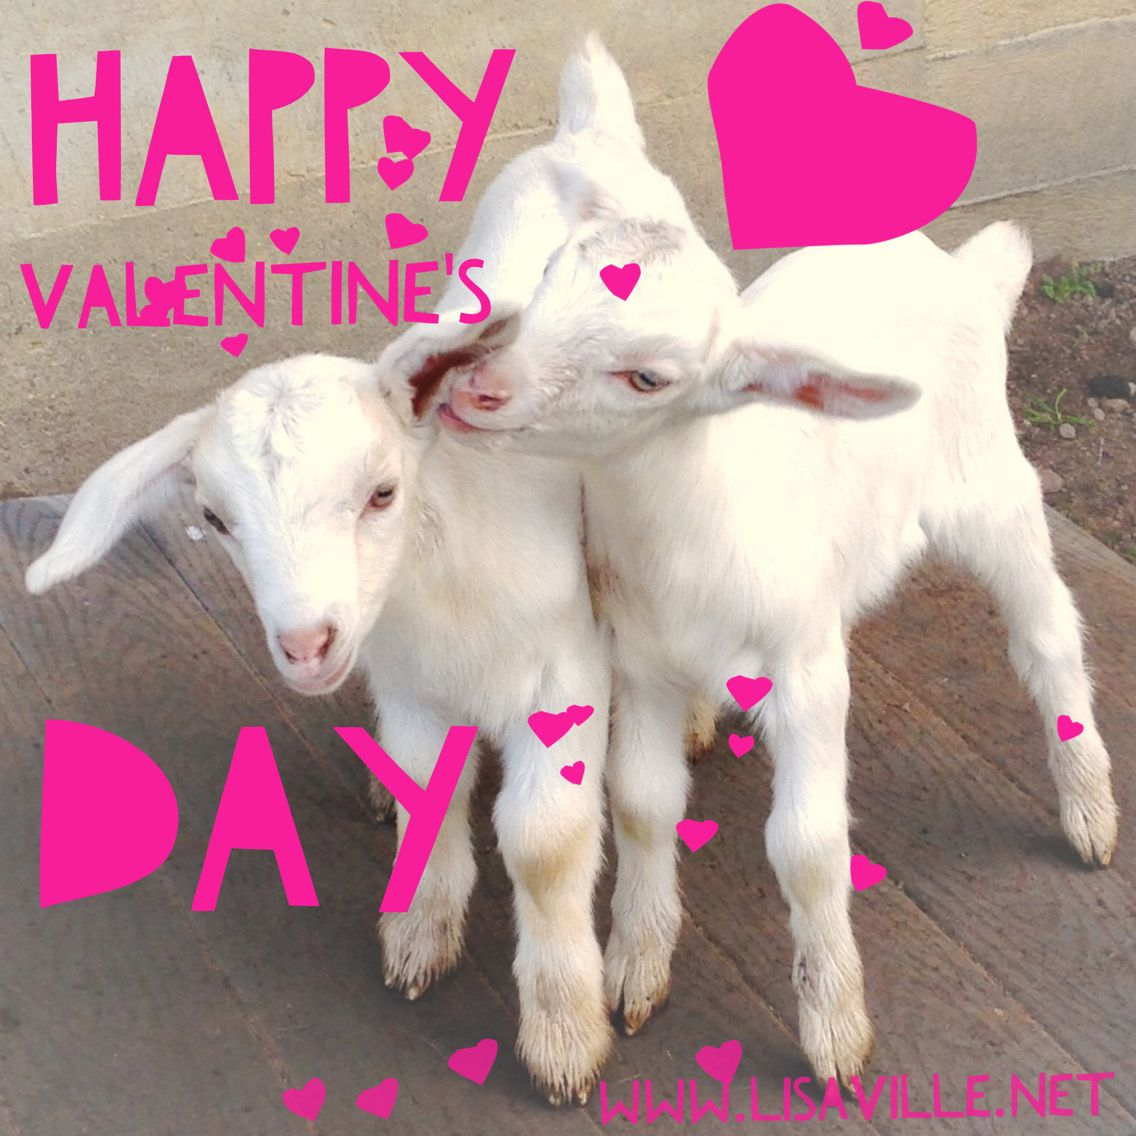 Happy Valentineu0027s Day!!!! Baby Goats And Ranch Life. Heart